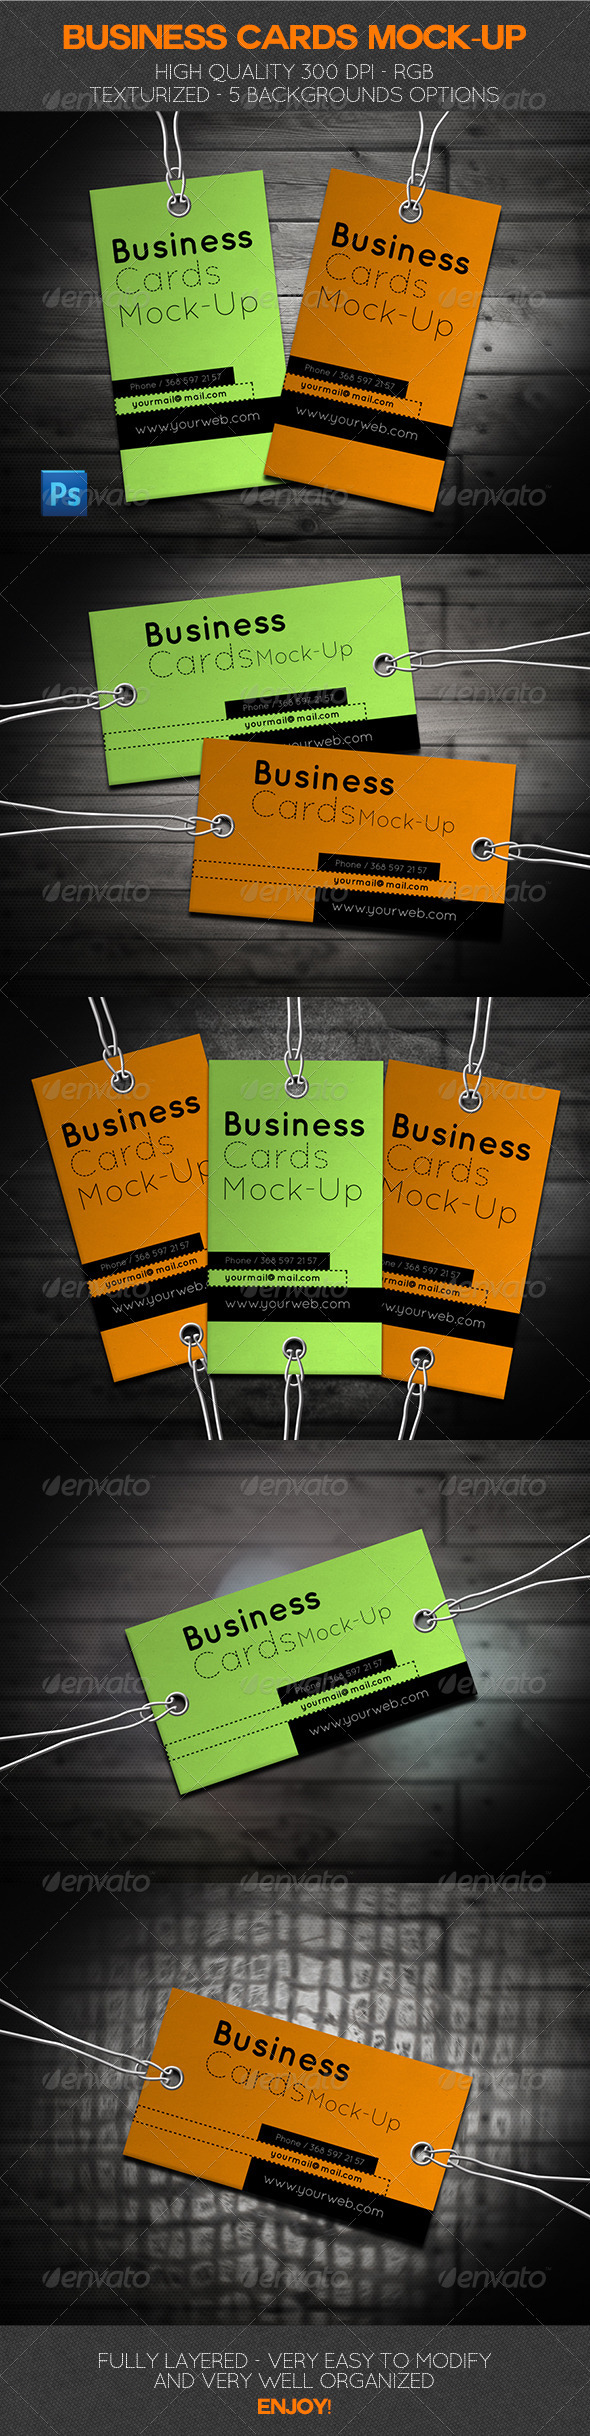 Business Cards Mock-Up - Business Cards Print